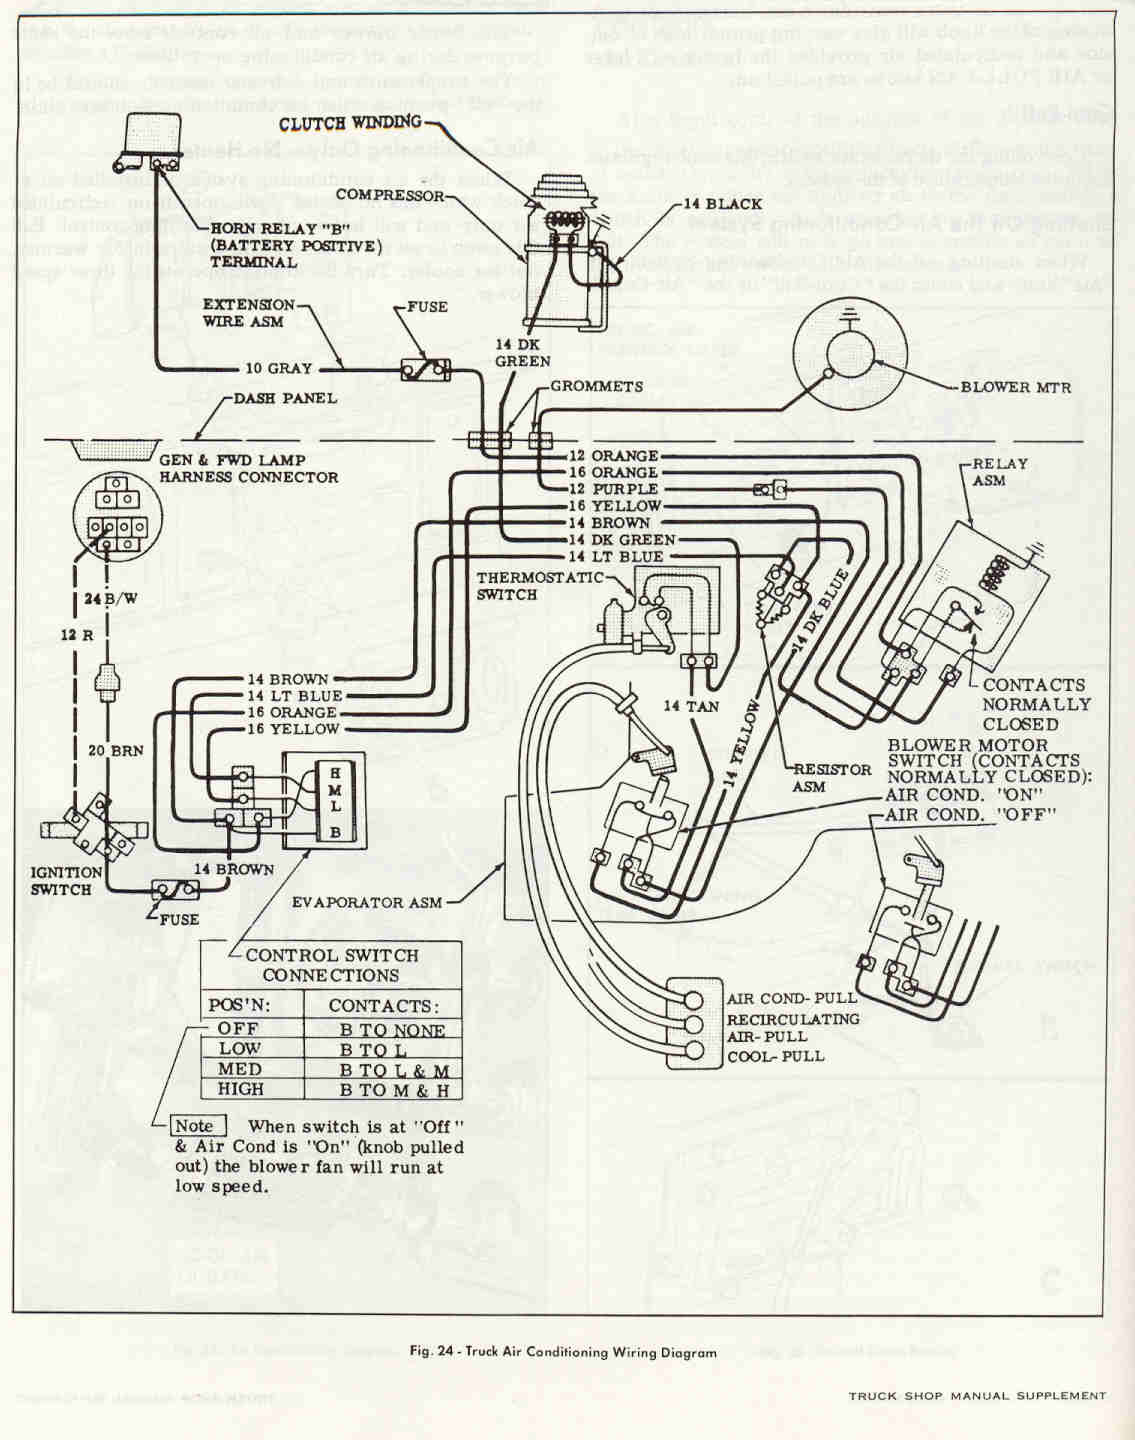 Wiring Diagram For 1980 Chevy C10 1968 C10 Wiring-Diagram